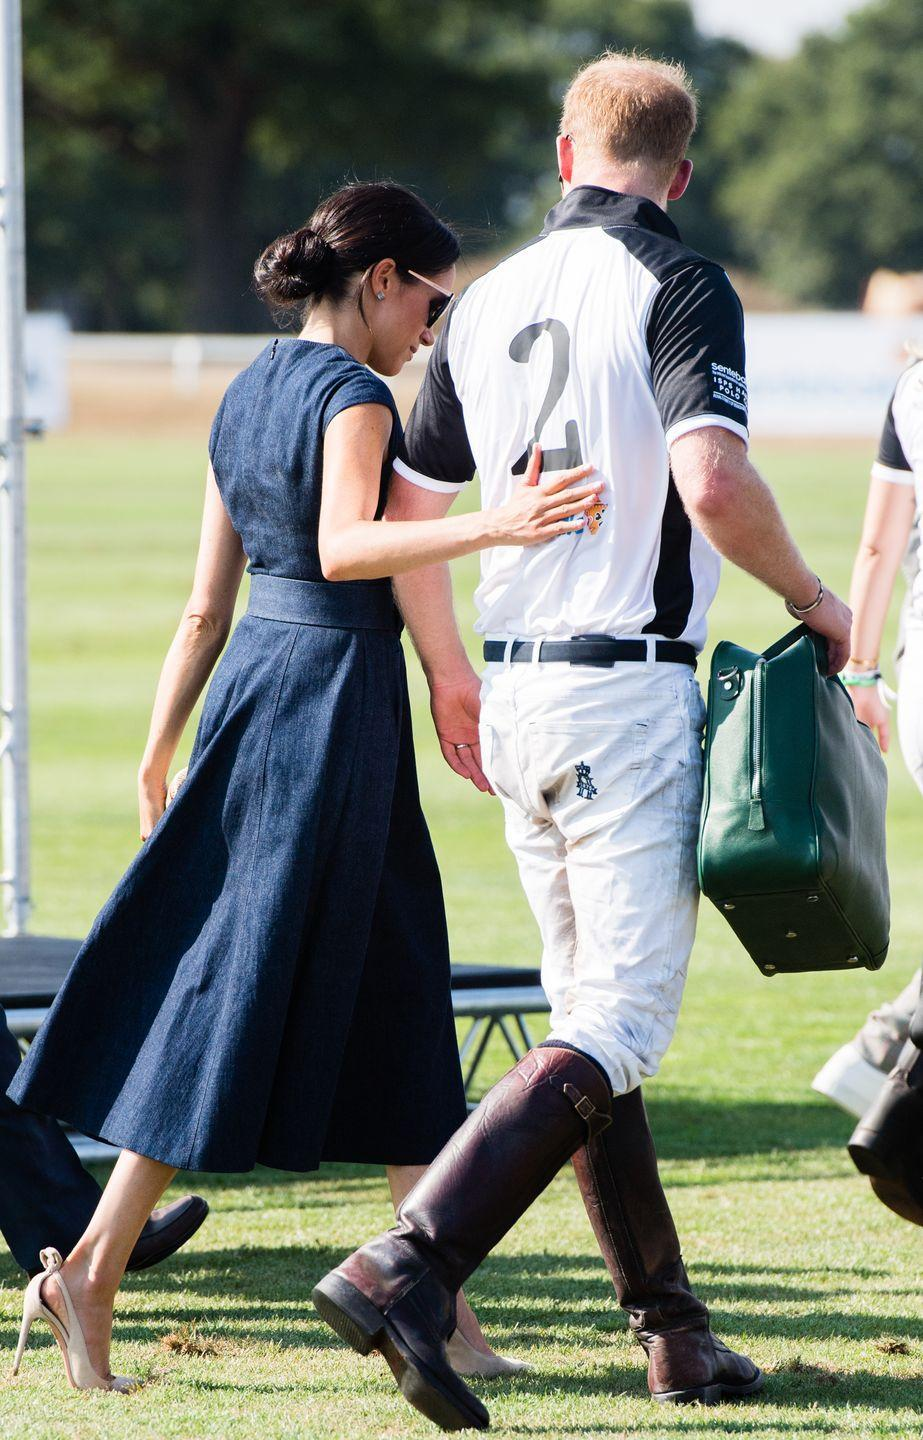 """<p>Following Prince Harry's polo match in July 2018, a <a href=""""https://www.elle.com/uk/fashion/celebrity-style/a22559039/meghan-markle-carolina-herrera-navy-blue-dress-polo/"""" rel=""""nofollow noopener"""" target=""""_blank"""" data-ylk=""""slk:Carolina Herrera-clad Meghan"""" class=""""link rapid-noclick-resp"""">Carolina Herrera-clad Meghan</a>was seen putting an affectionate hand on his back. Too cute! </p>"""